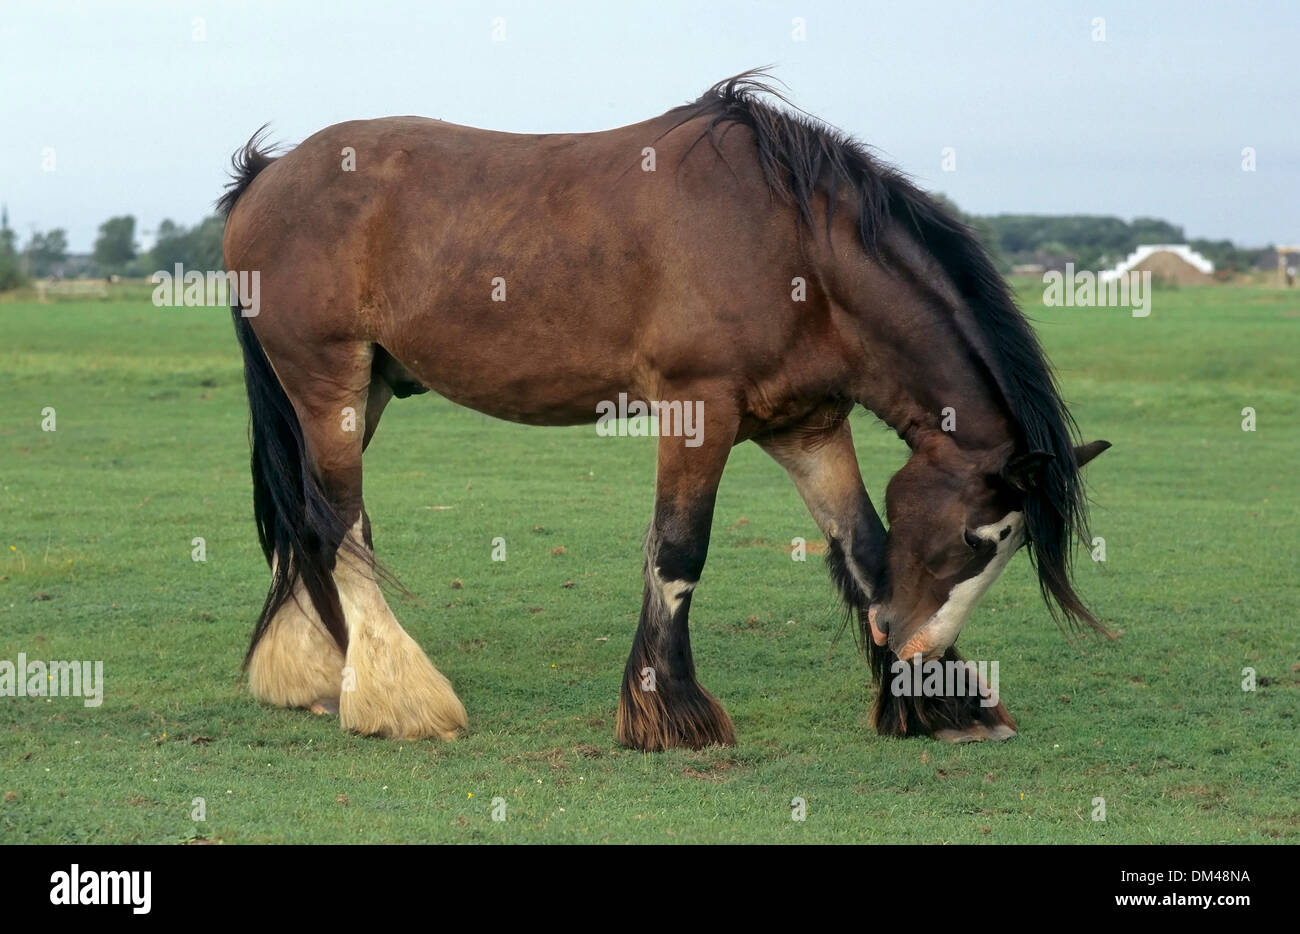 Britisches Kaltblut, Hengst, Shirehorse, Stute mit Fohlen, Shire horse Stock Photo